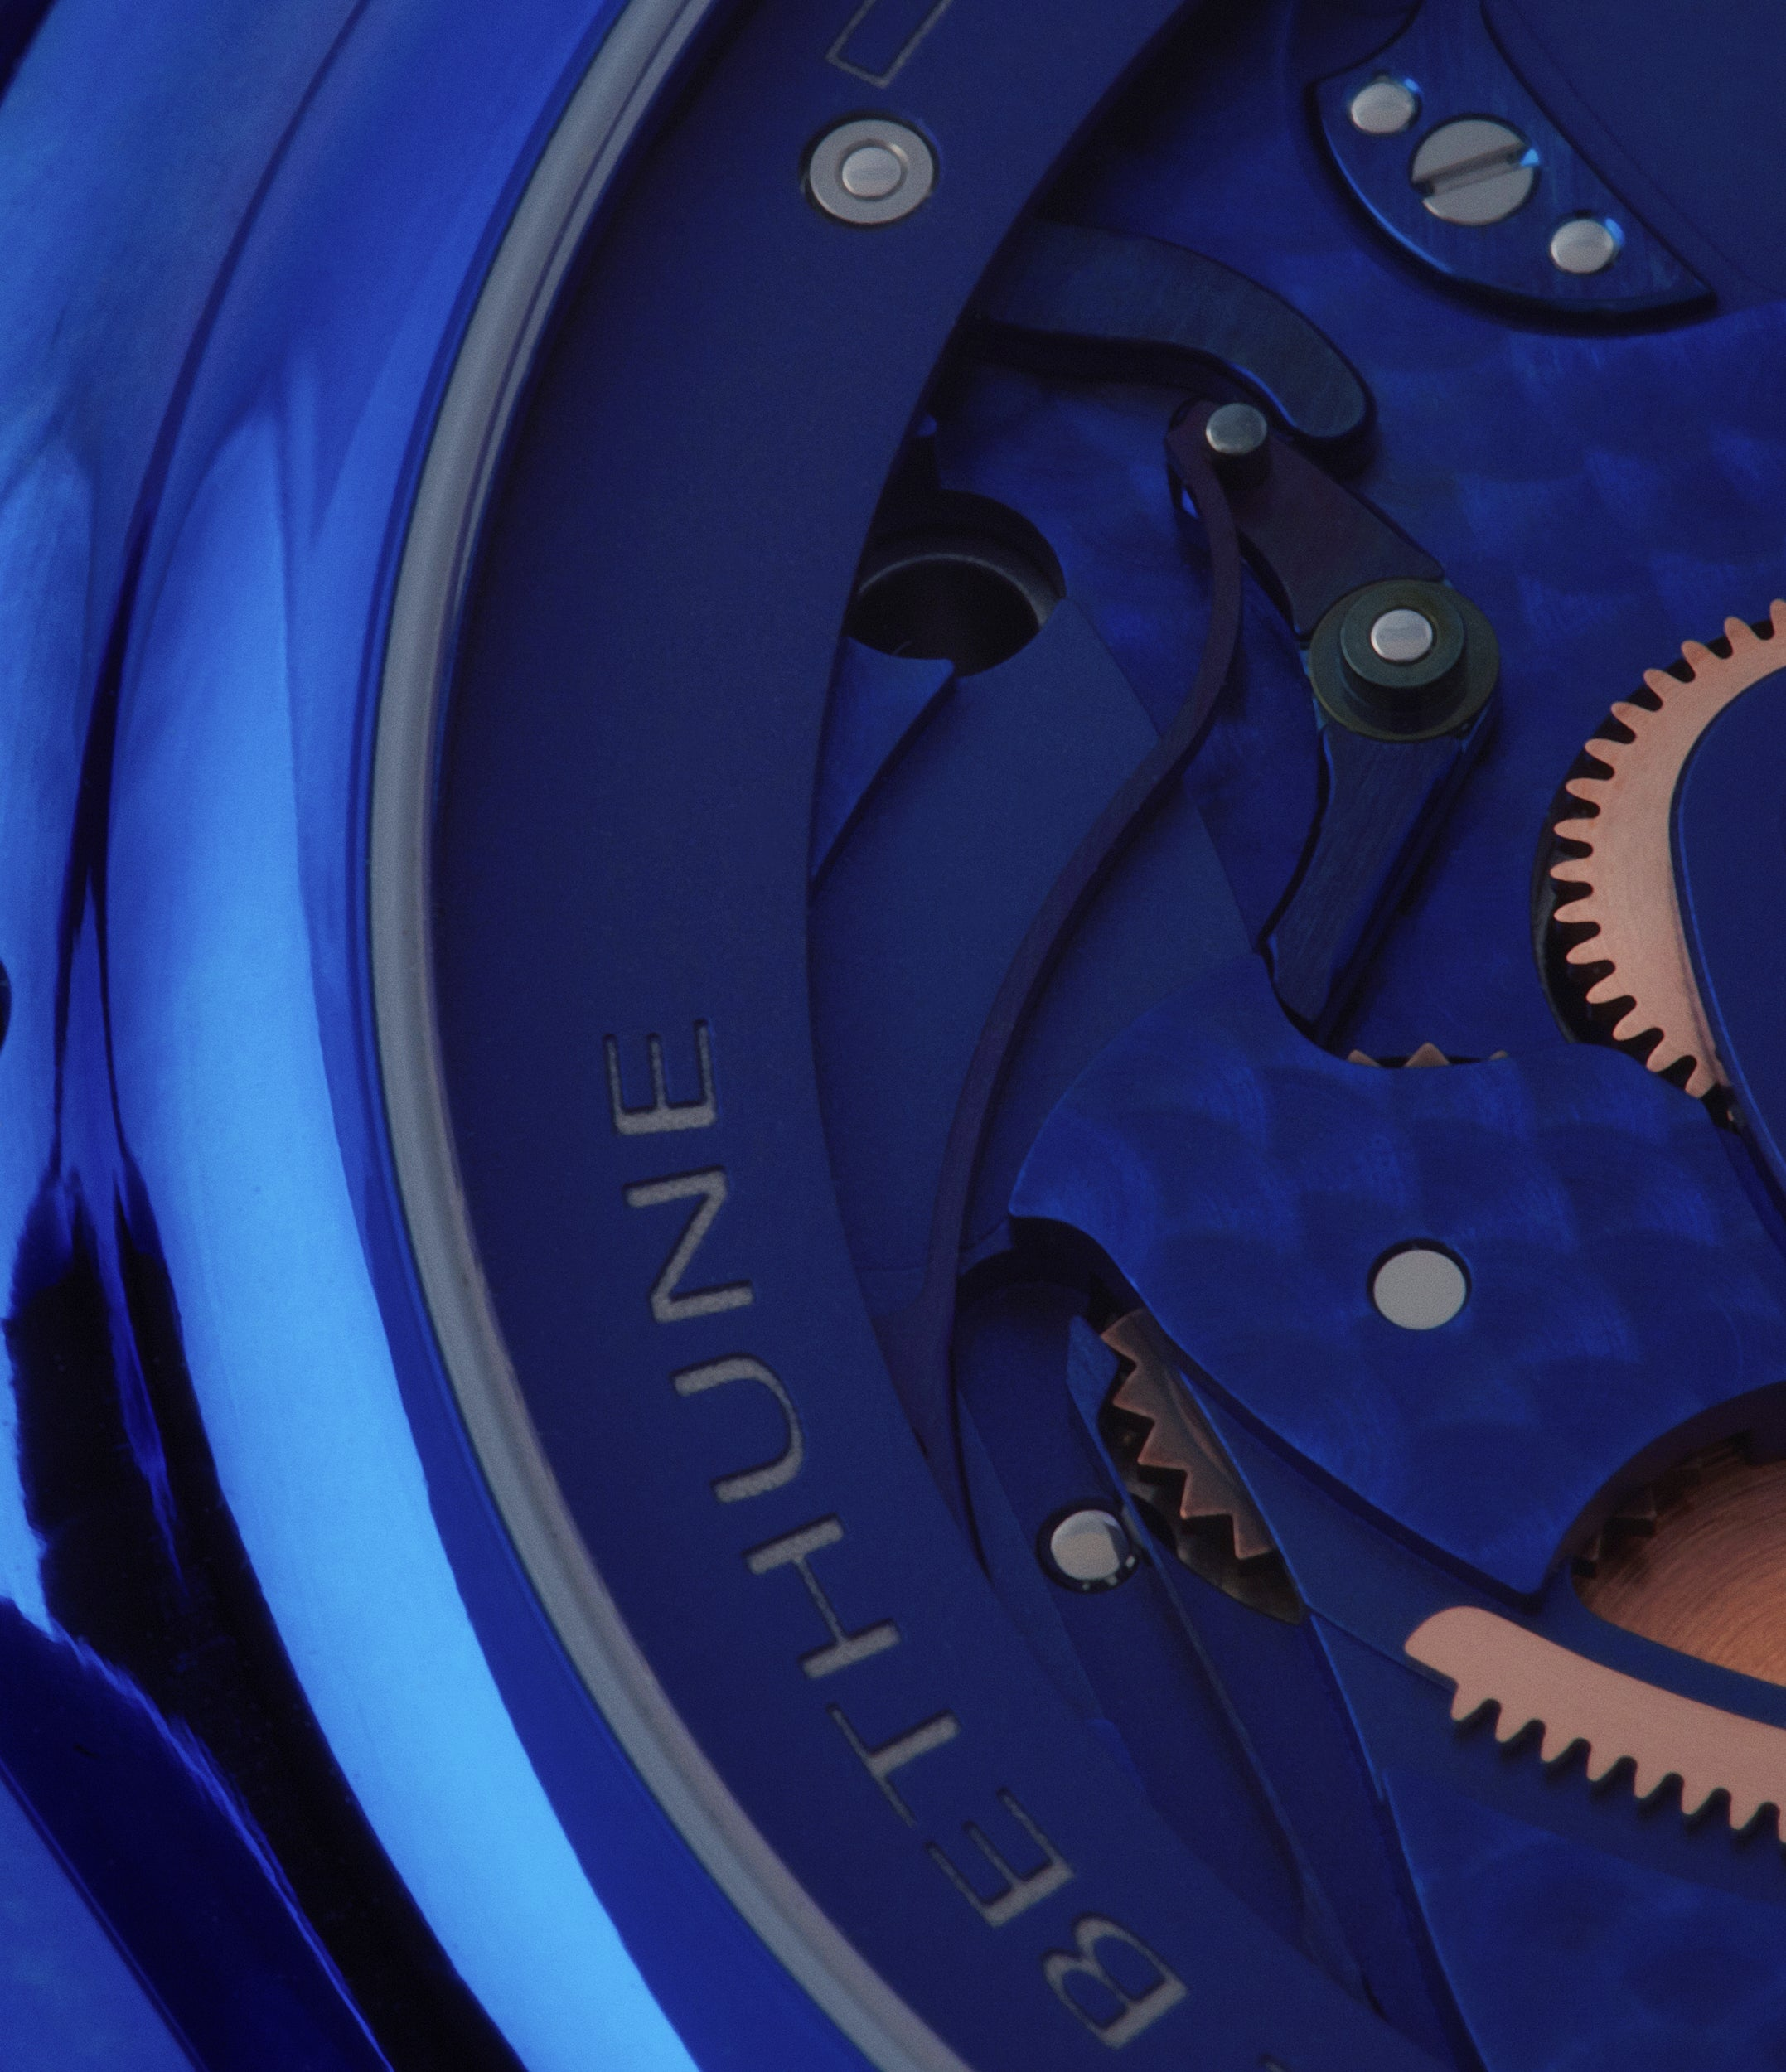 blue calibre De Bethune DB28 Kind of Blue titanium rare limited edition independent watchmaker for sale at A Collected Man London UK specilaist of rare watches